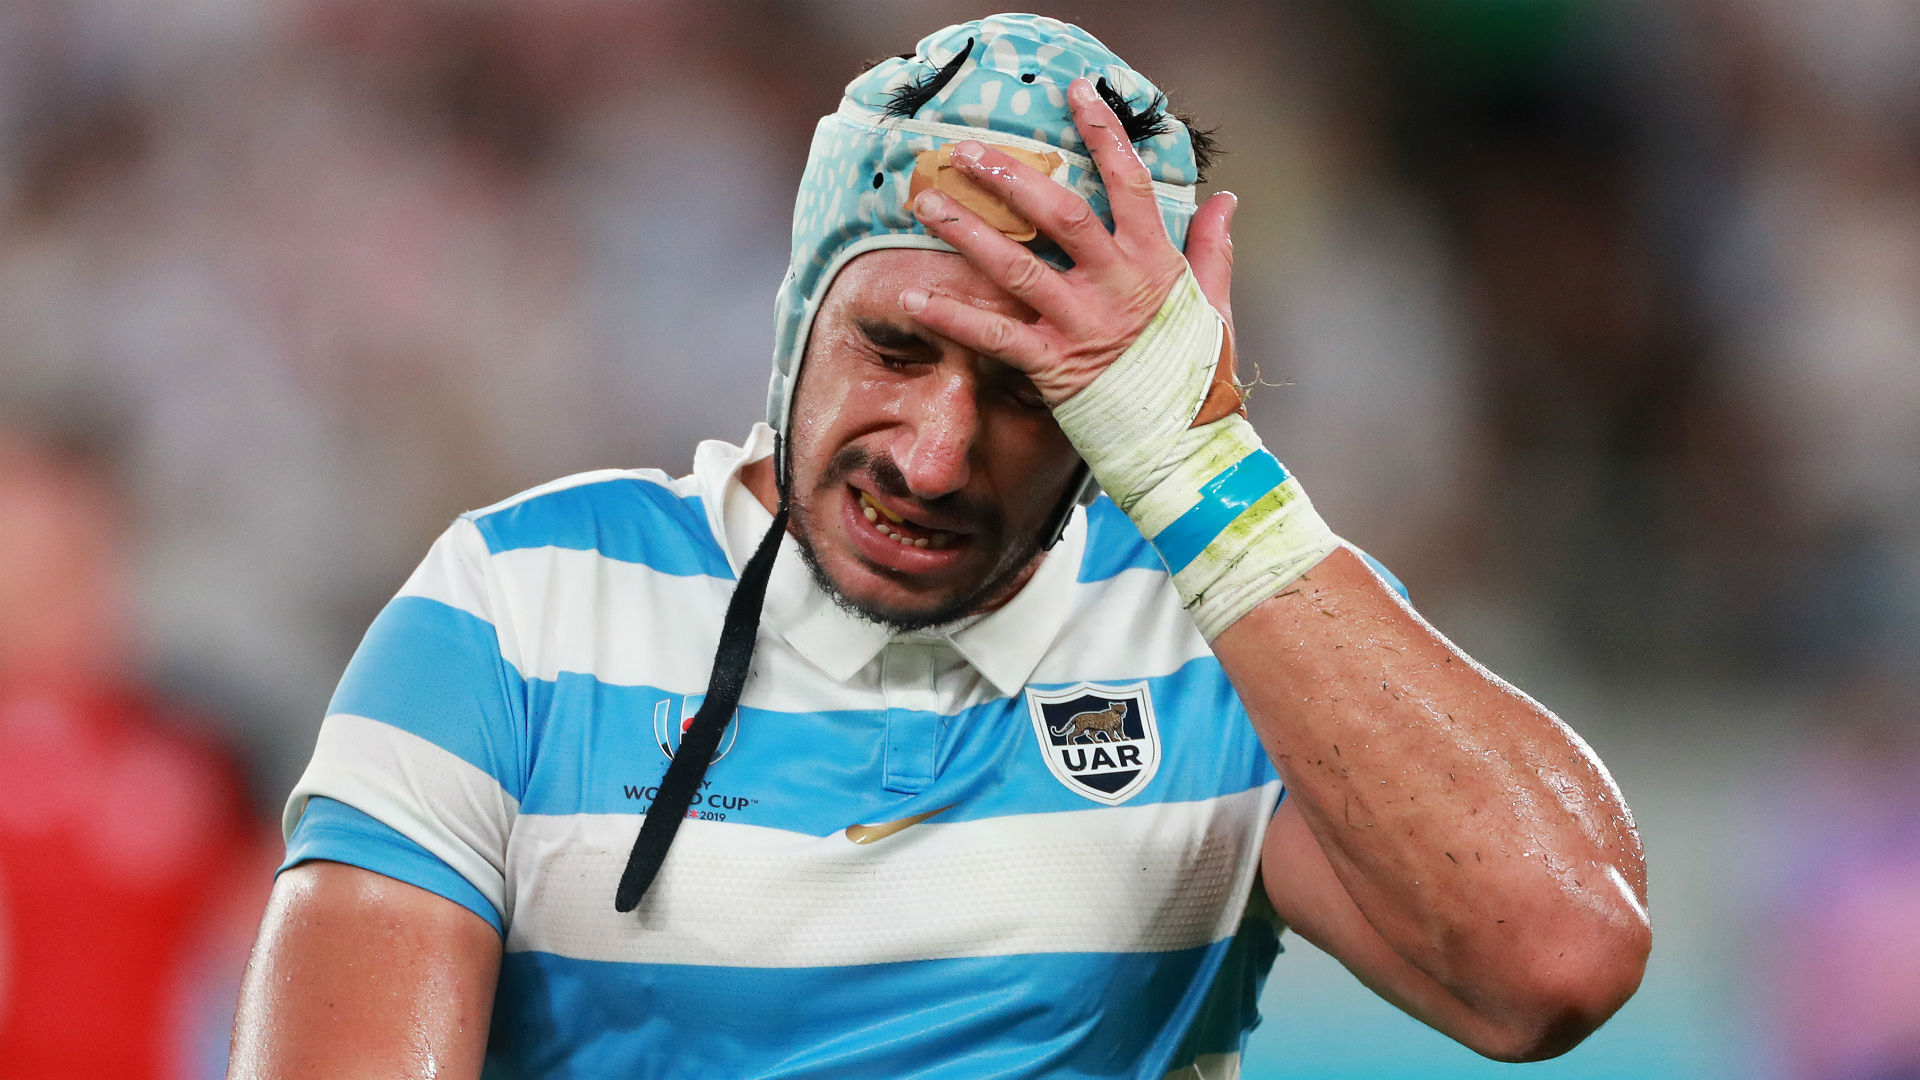 Rugby World Cup 2019: England 39-10 Argentina